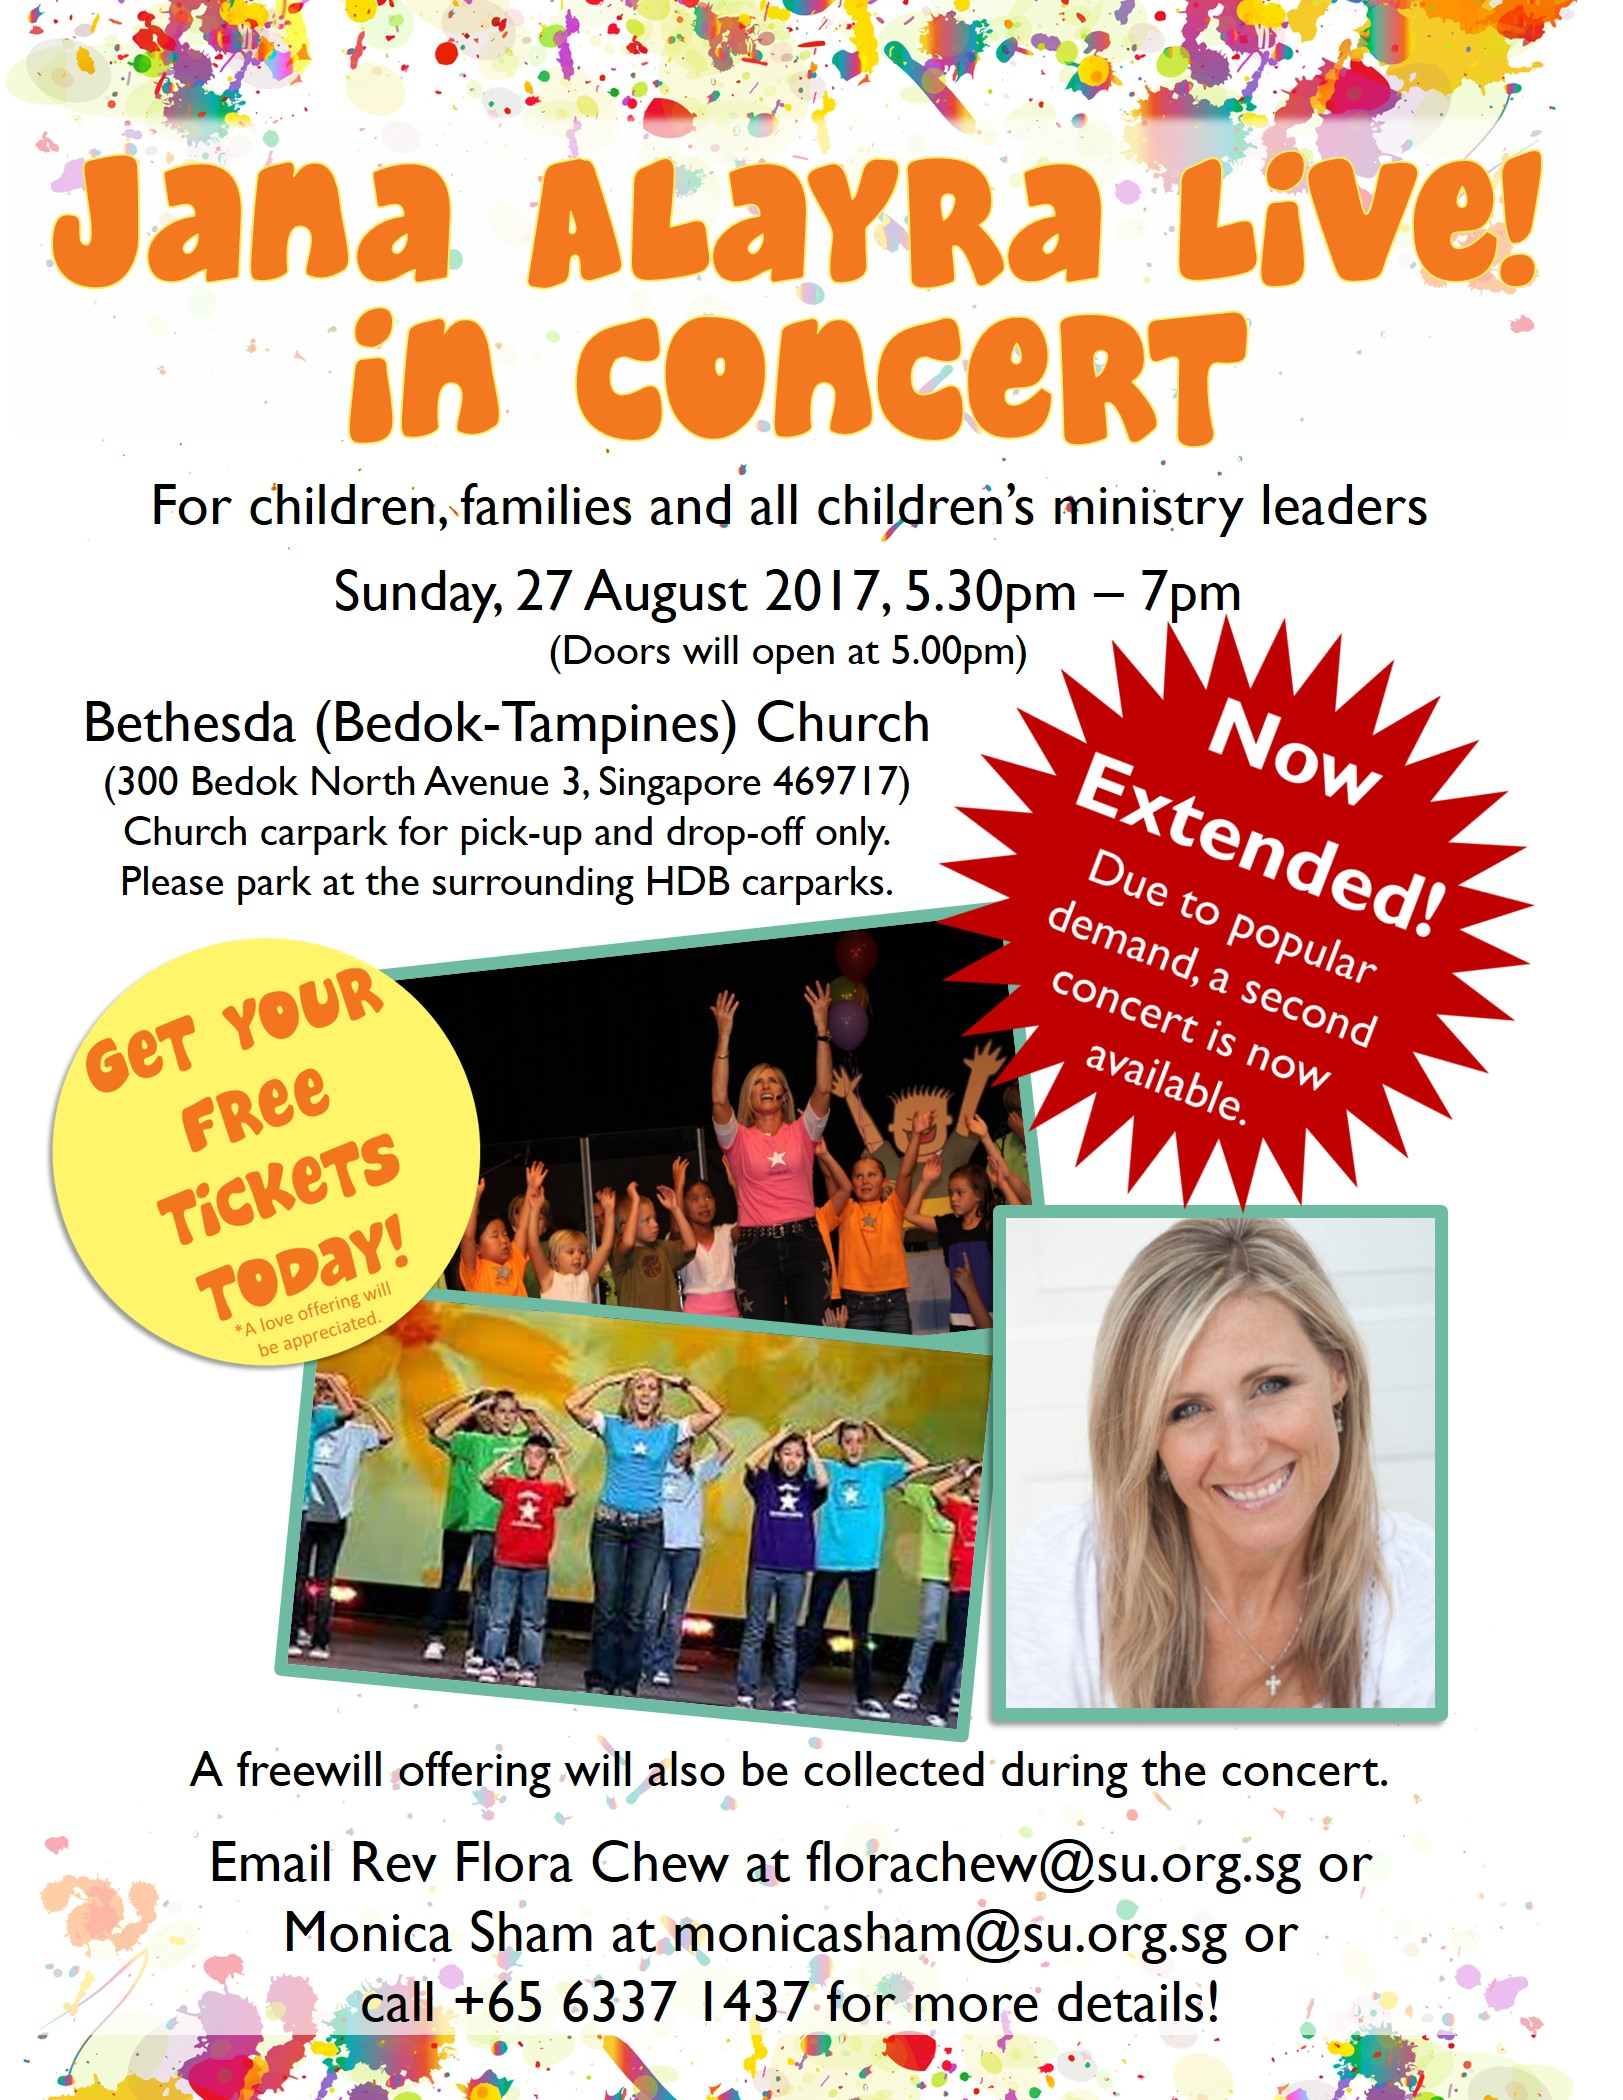 Jana's 2nd concert on 27 Aug